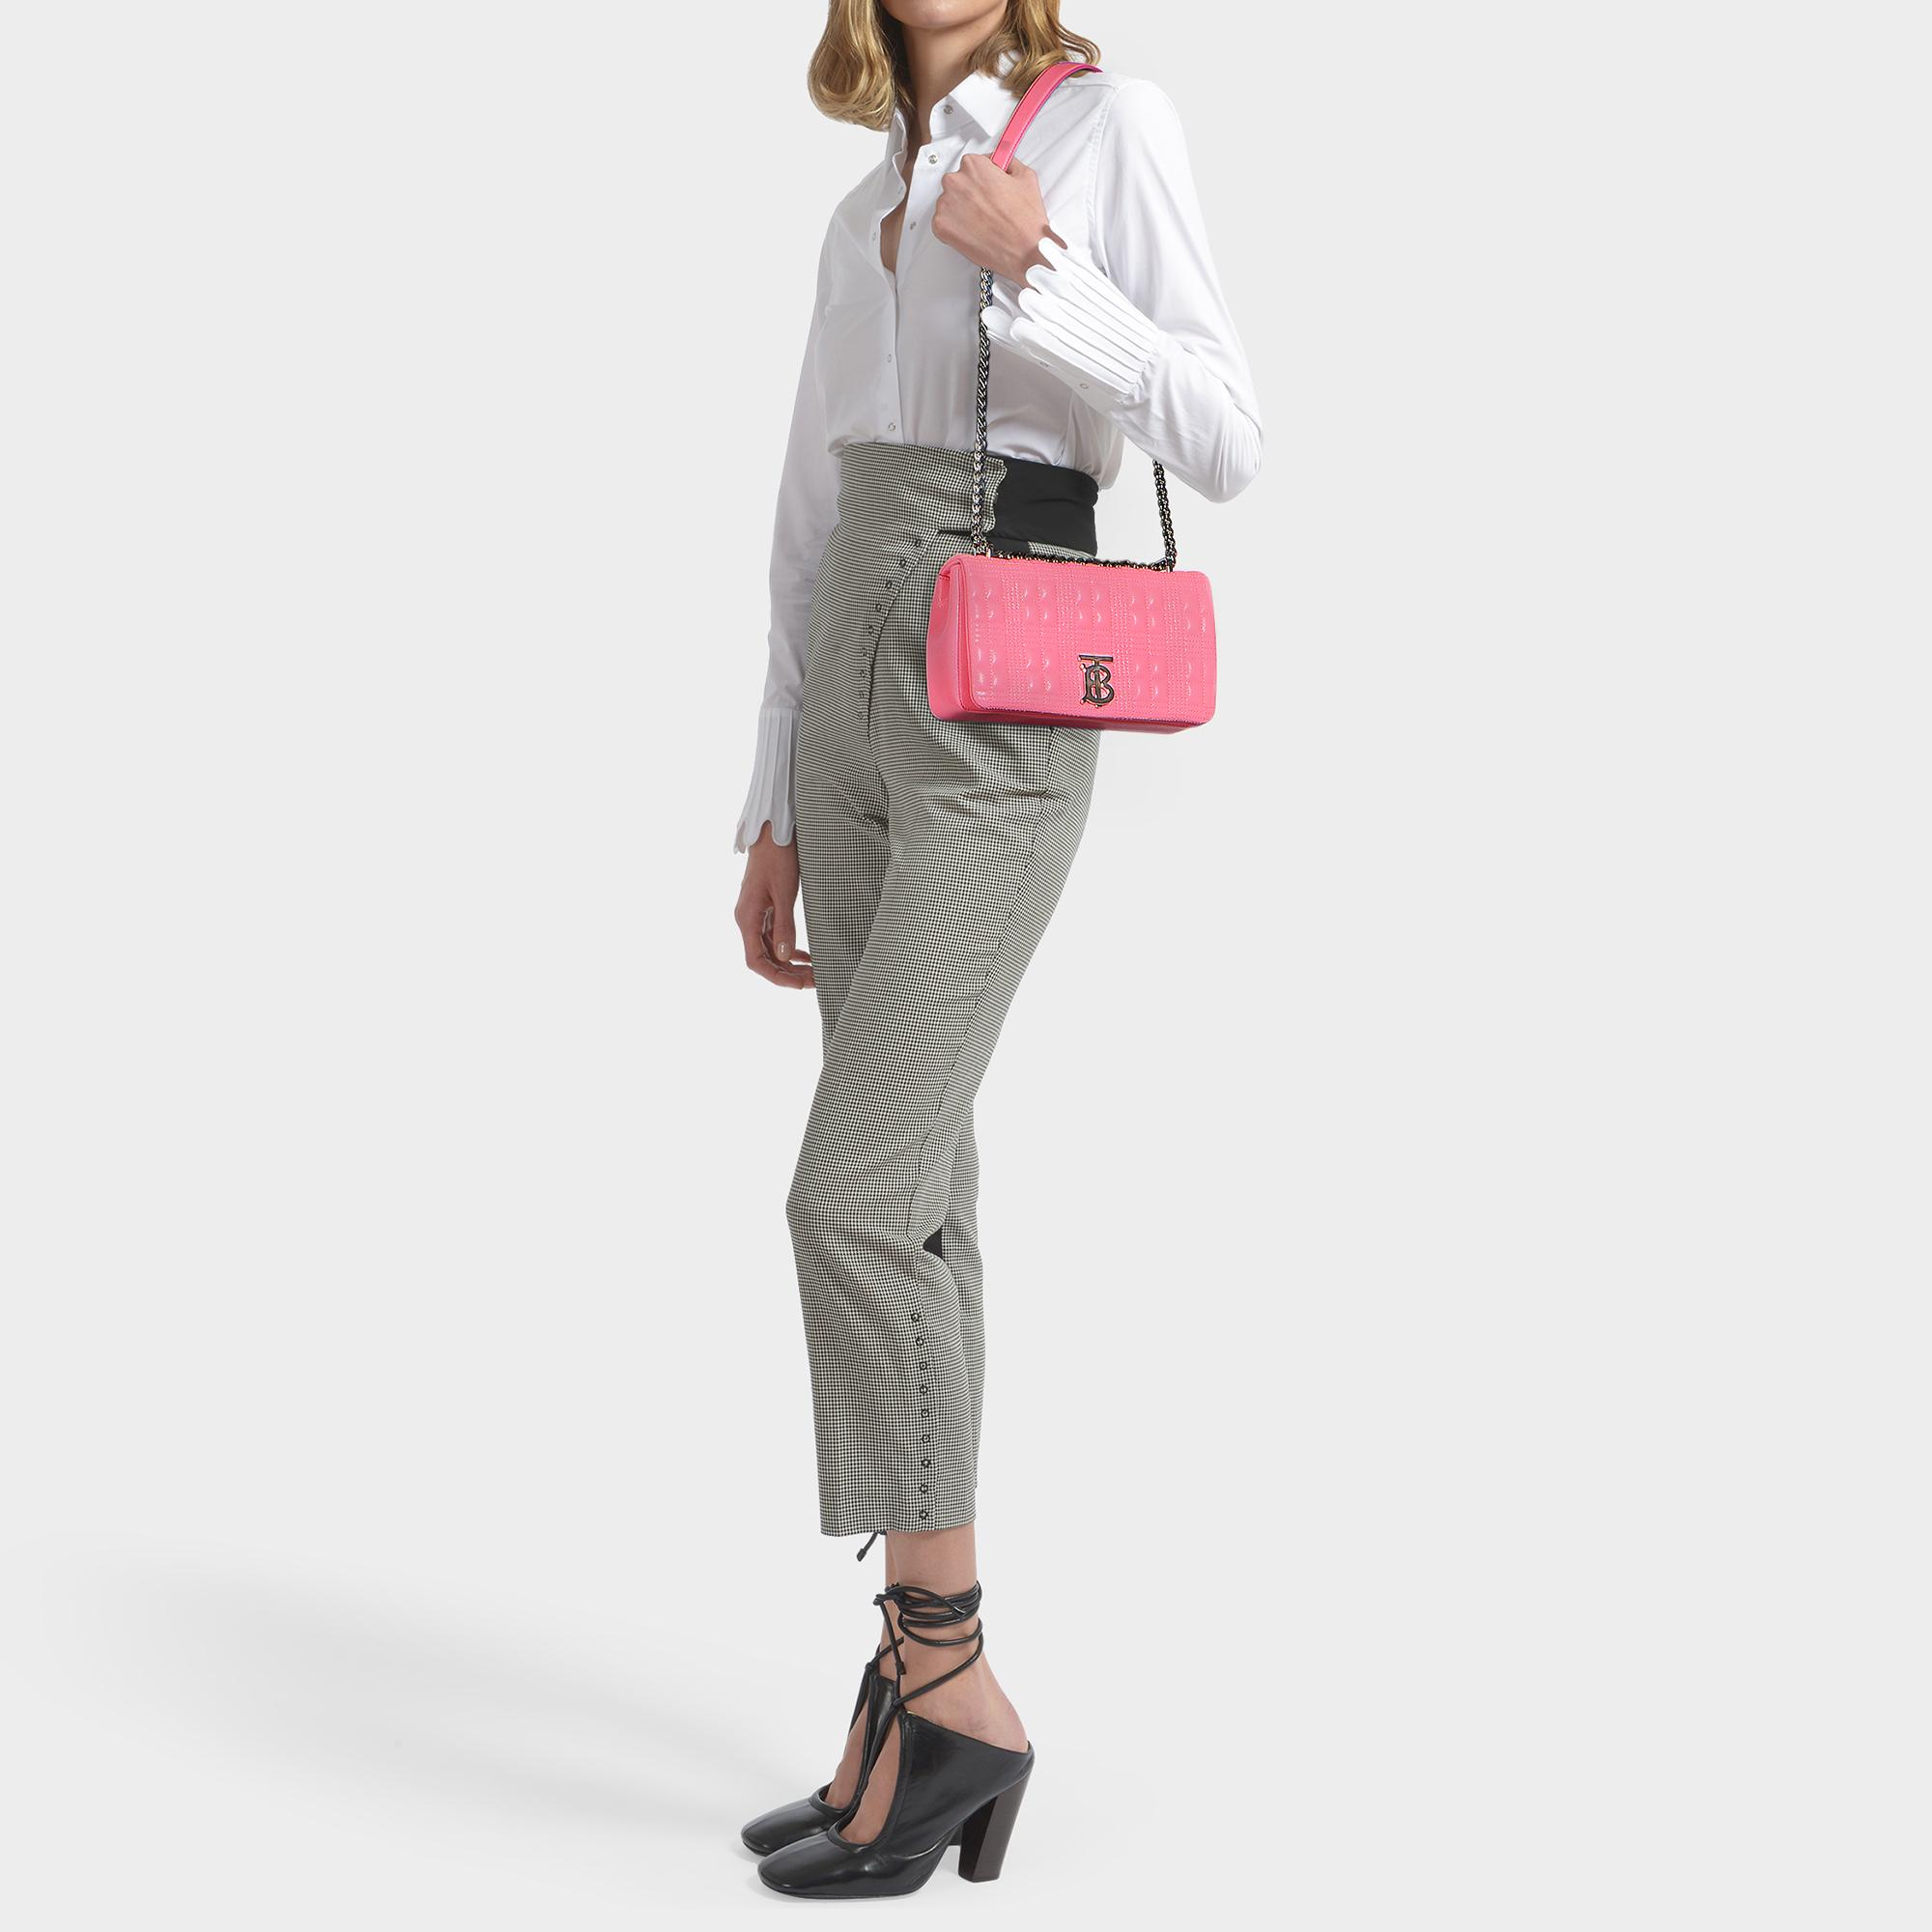 Burberry Lola Small Bag In Pink Caviar Quilted Check Leather in ...